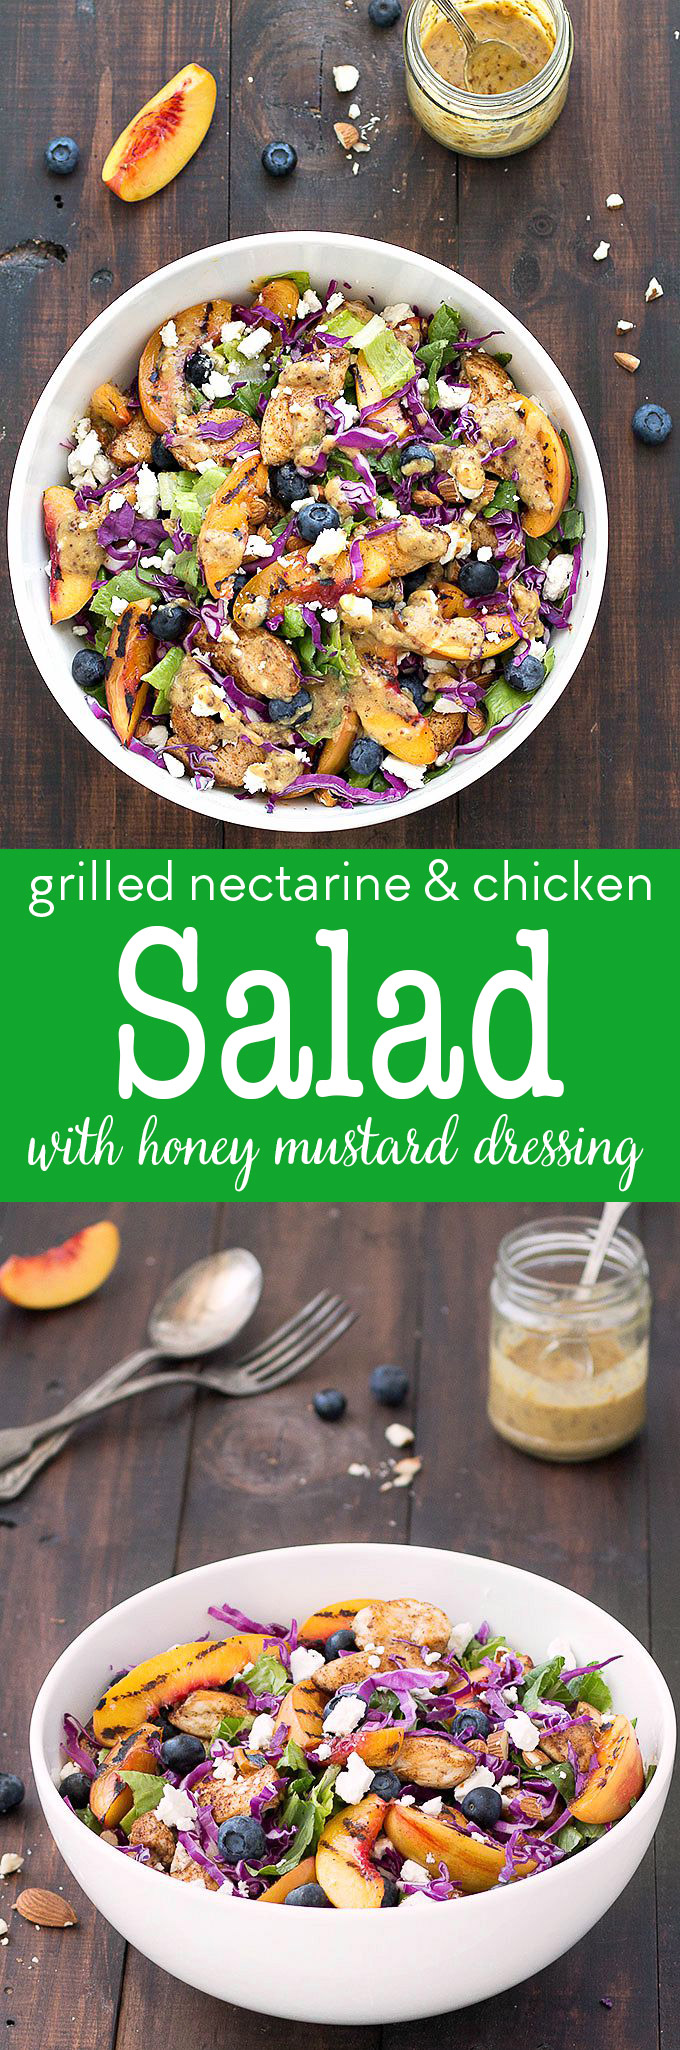 Grilled nectarine and chicken salad - a colorful, fresh, and full of flavor summer salad topped with a creamy and homemade honey mustard dressing